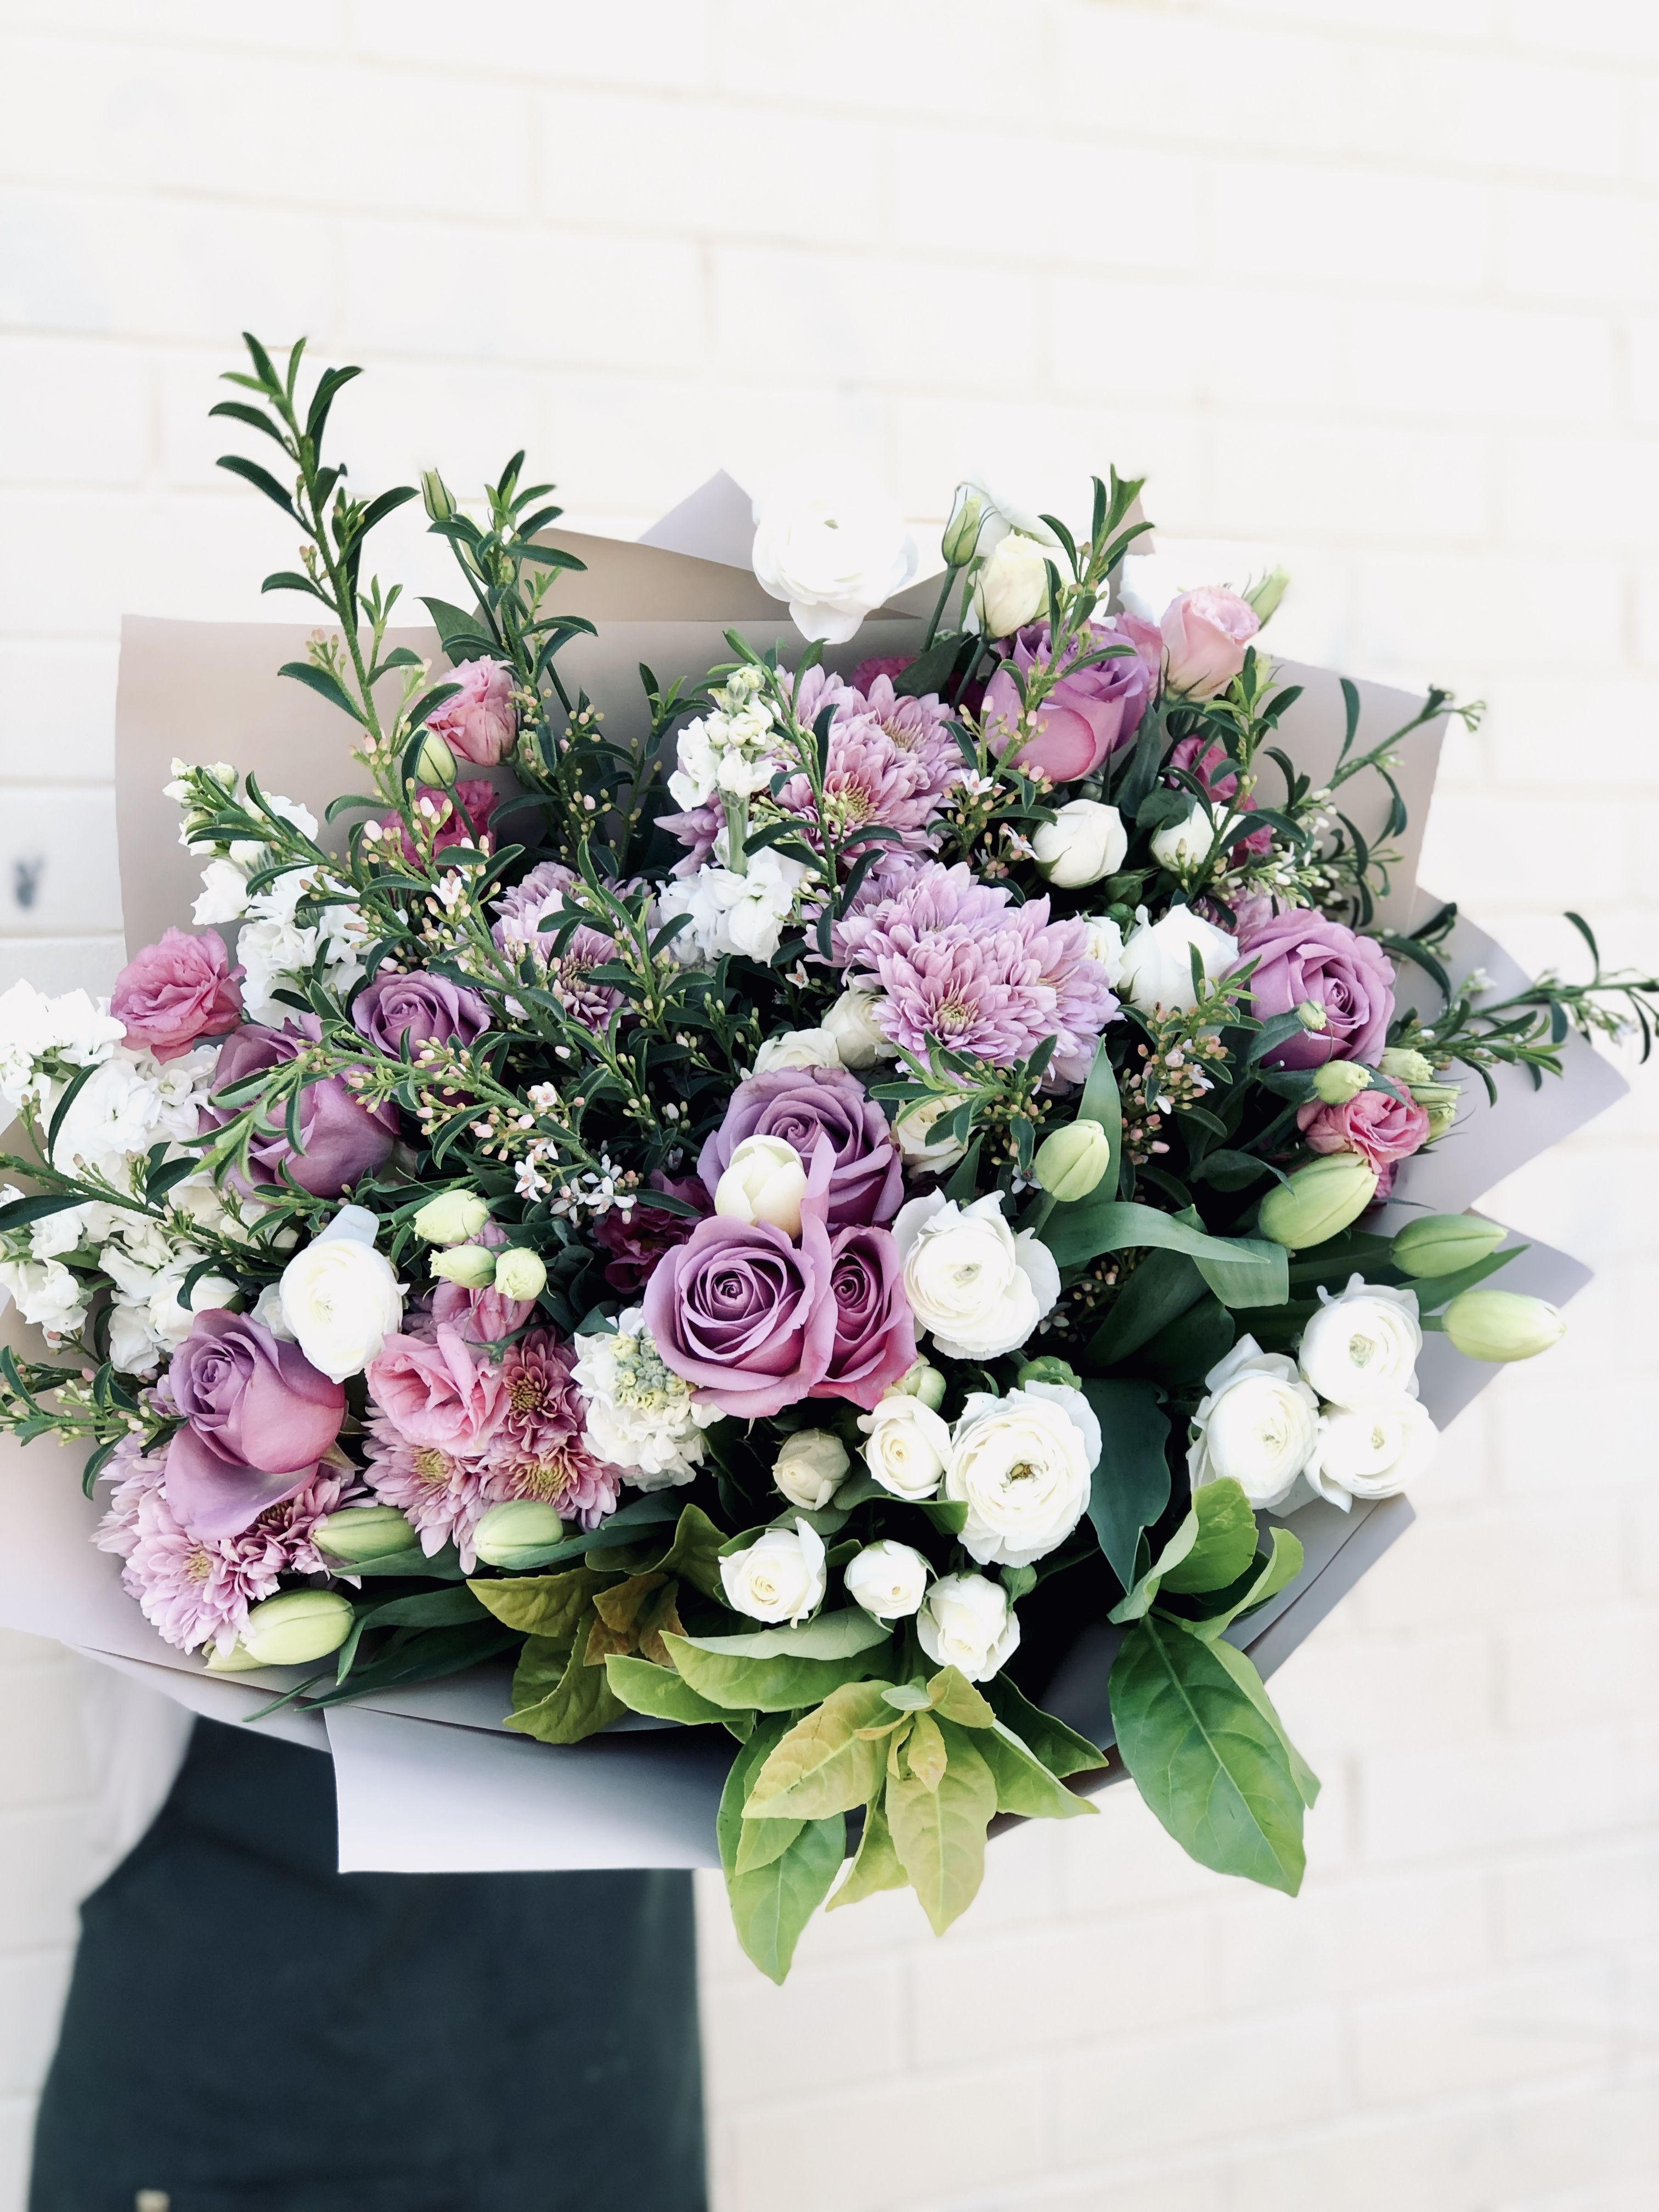 Florist S Choice Sustainable Flowers Flower Delivery Fresh Flower Delivery